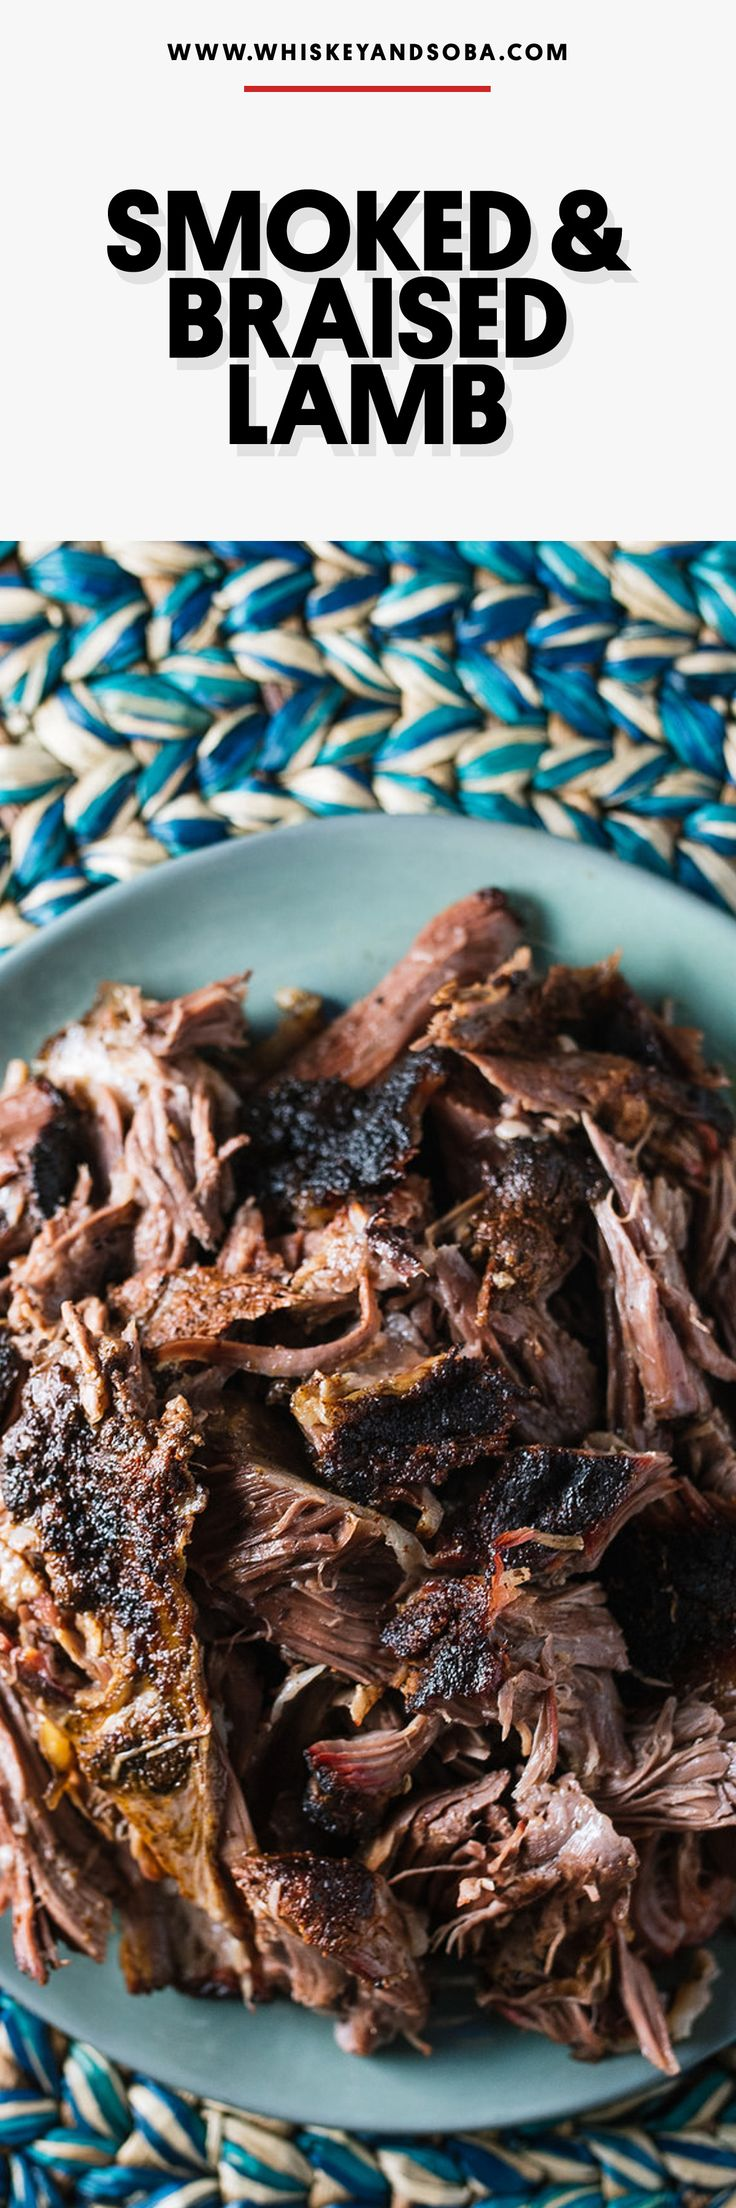 A worthy addition to your BBQ portfolio: smoked then braised lamb. The perfect meat for tacos, sandwiches, or rice bowls!